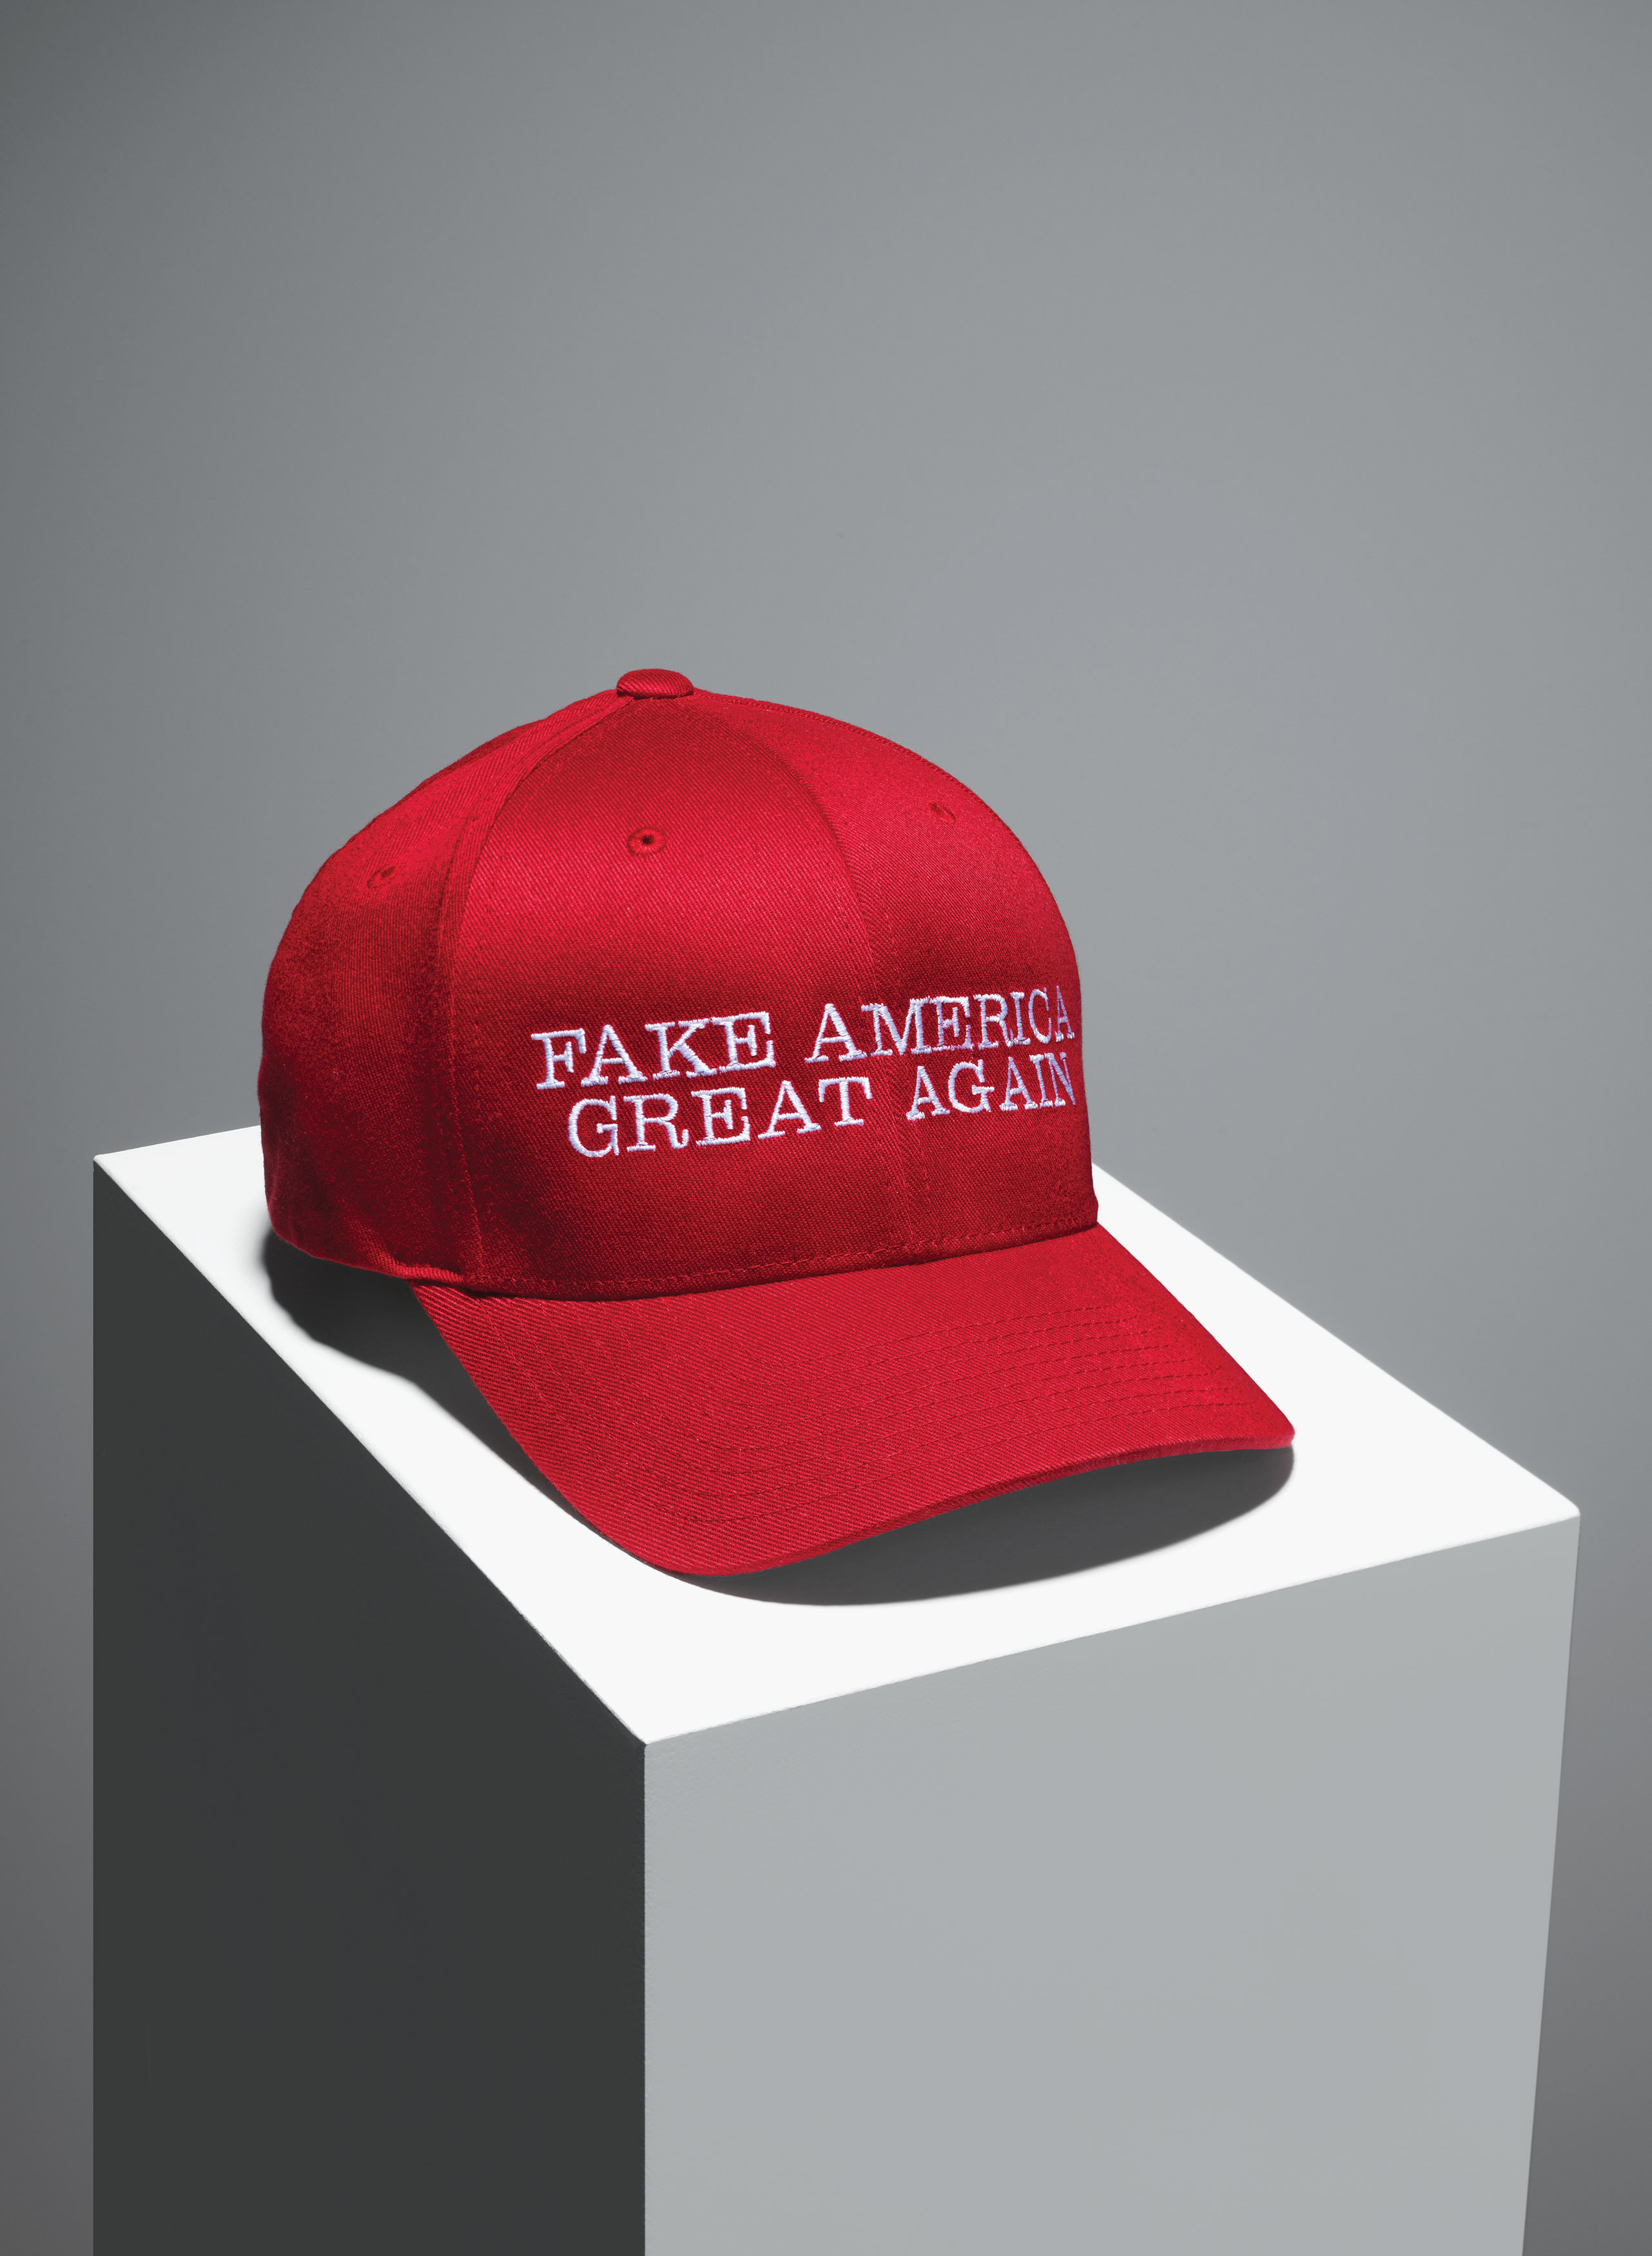 Fake America Great Again Mit Technology Review